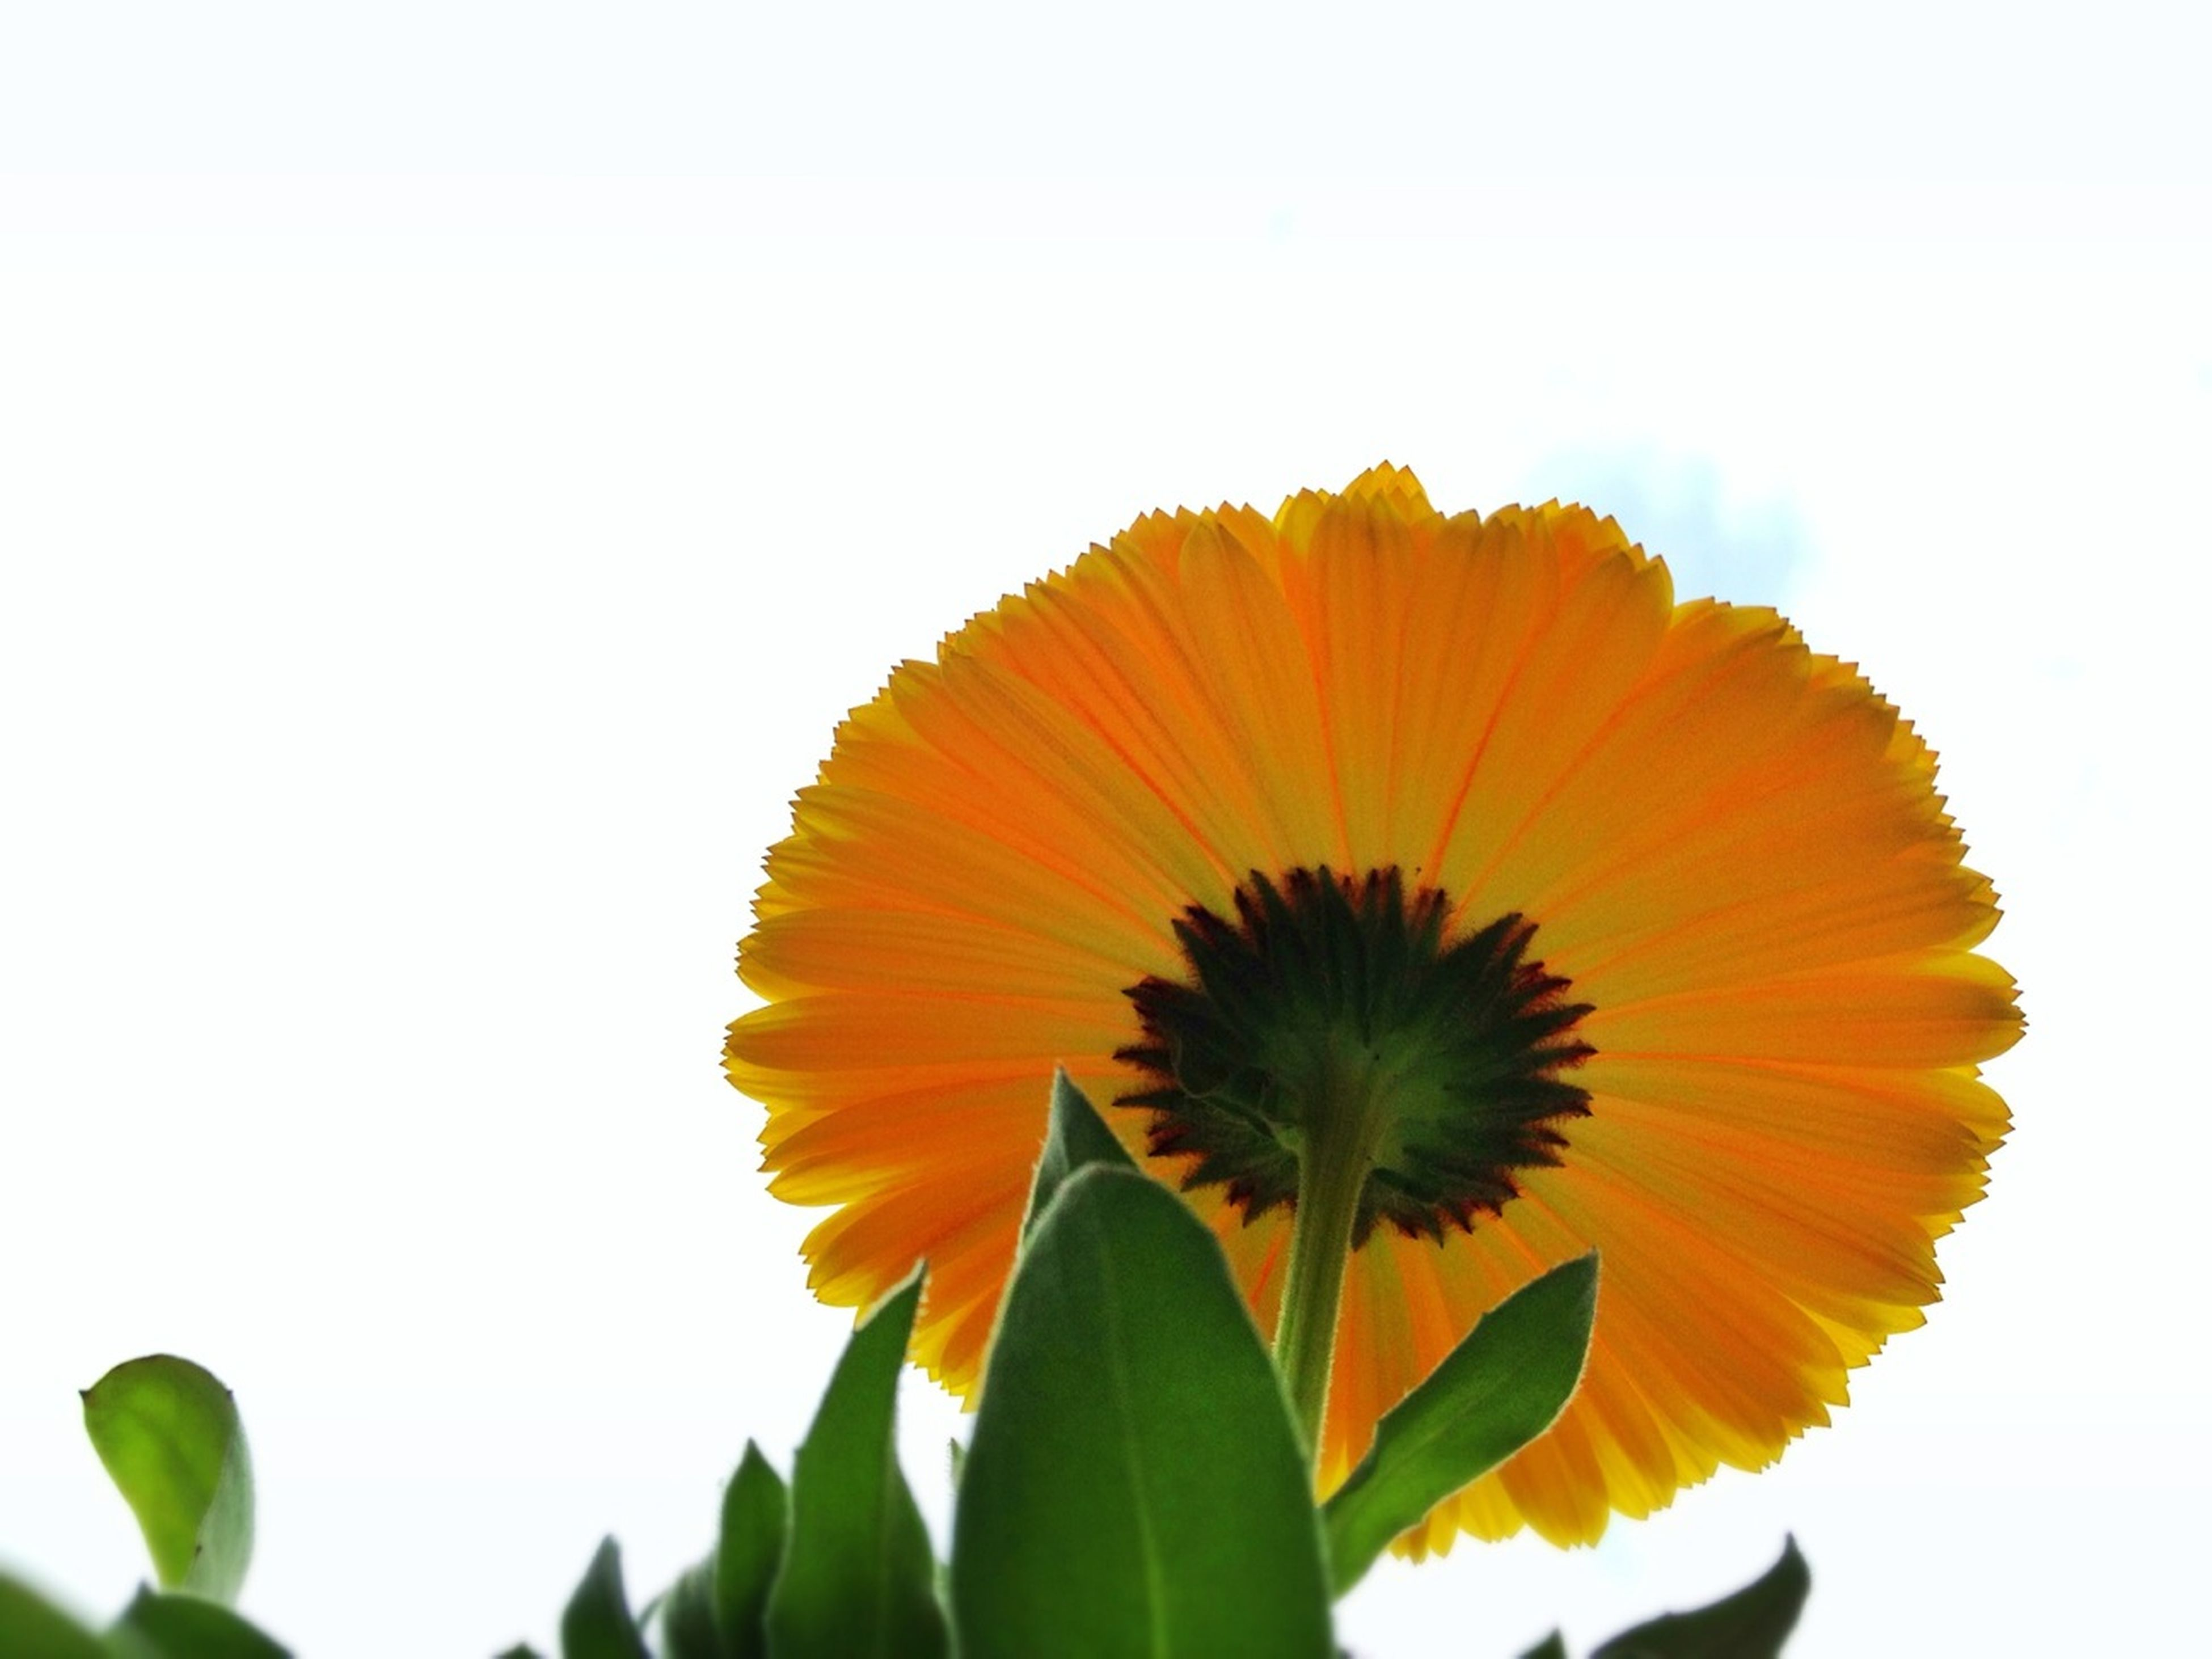 flower, fragility, petal, freshness, flower head, growth, beauty in nature, clear sky, nature, copy space, yellow, leaf, close-up, plant, single flower, sunflower, low angle view, orange color, blooming, white background